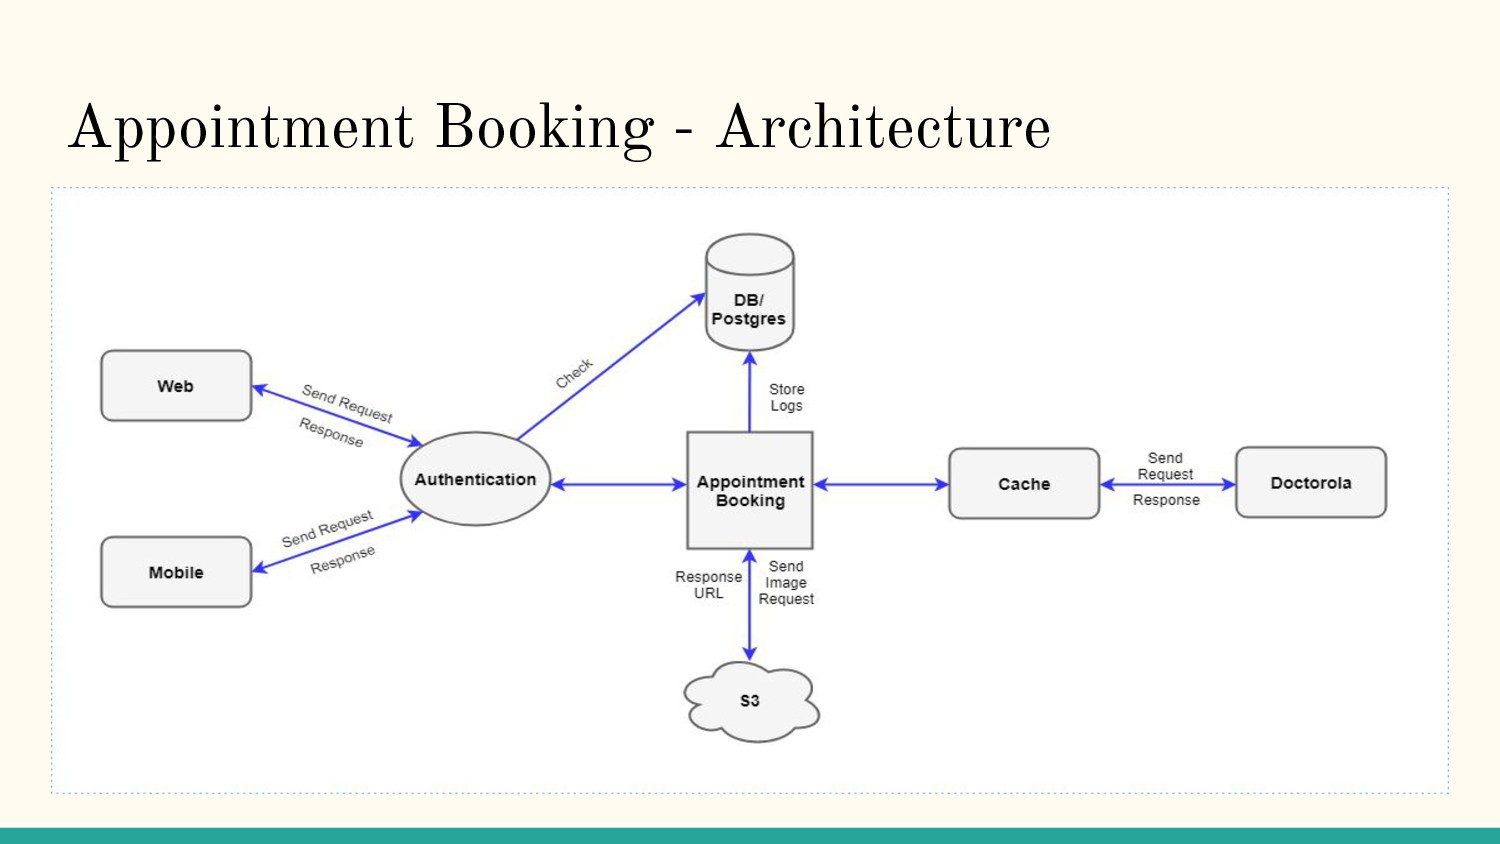 Appointment Booking - Architecture